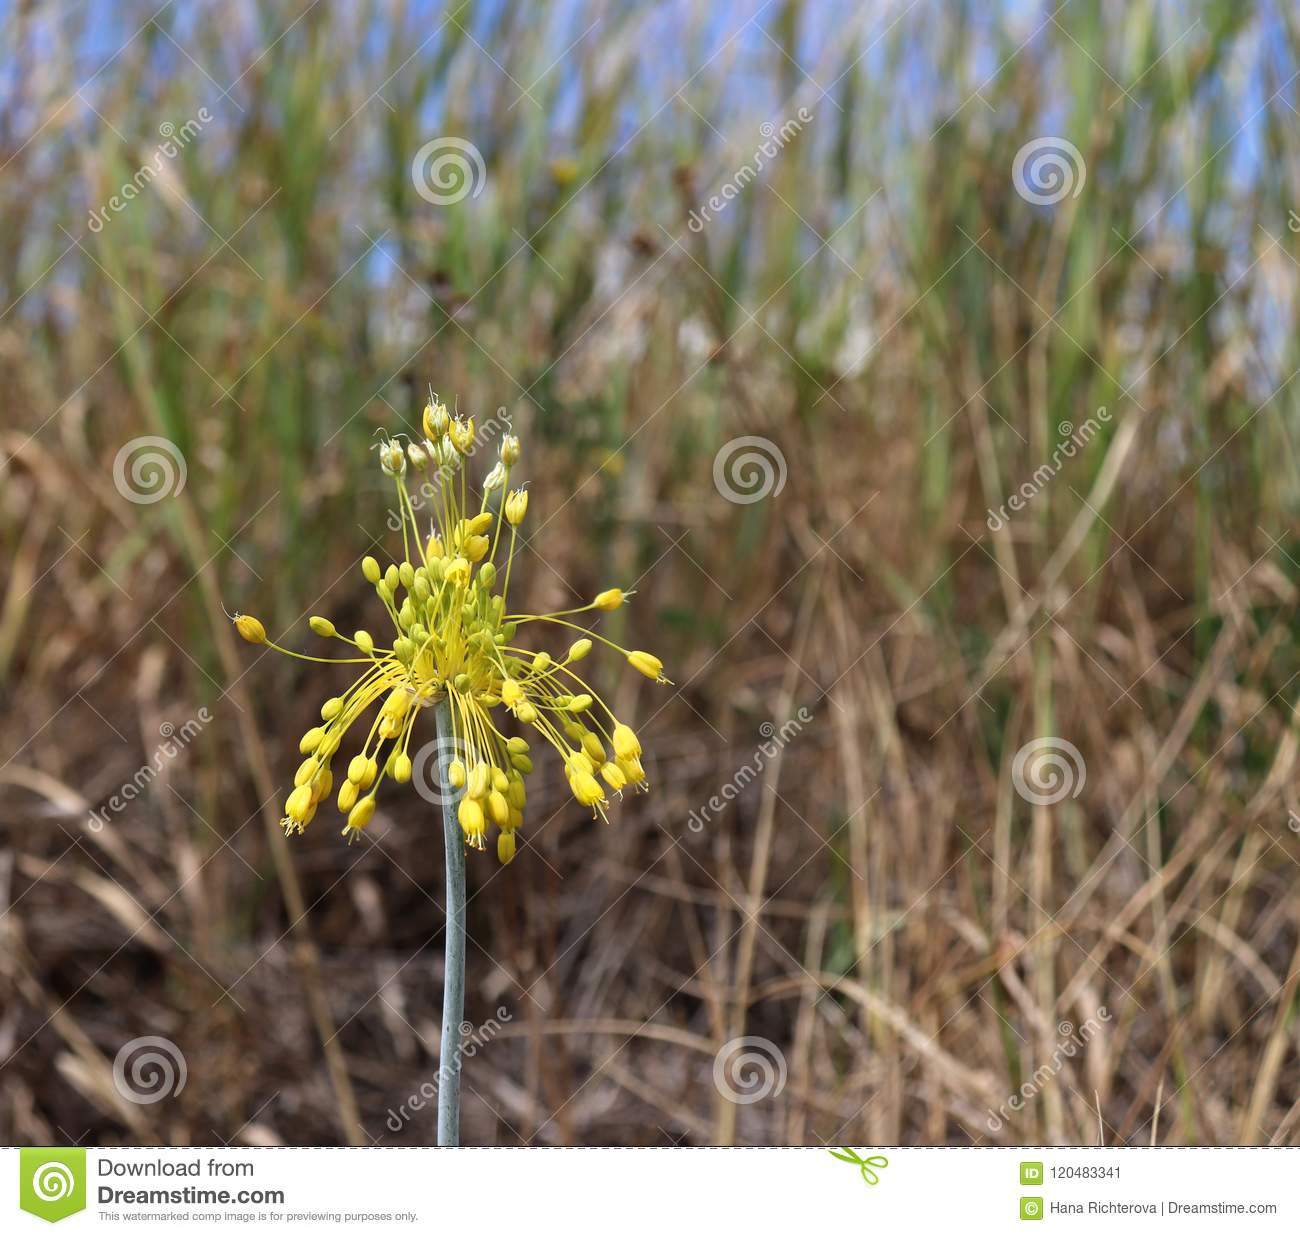 Close up view of yellow flower allium flavum on a meadow allium close up view of yellow flower allium flavum on a meadow allium flavum the small yellow onion or yellow flowered garlic is a species of flowering plant mightylinksfo